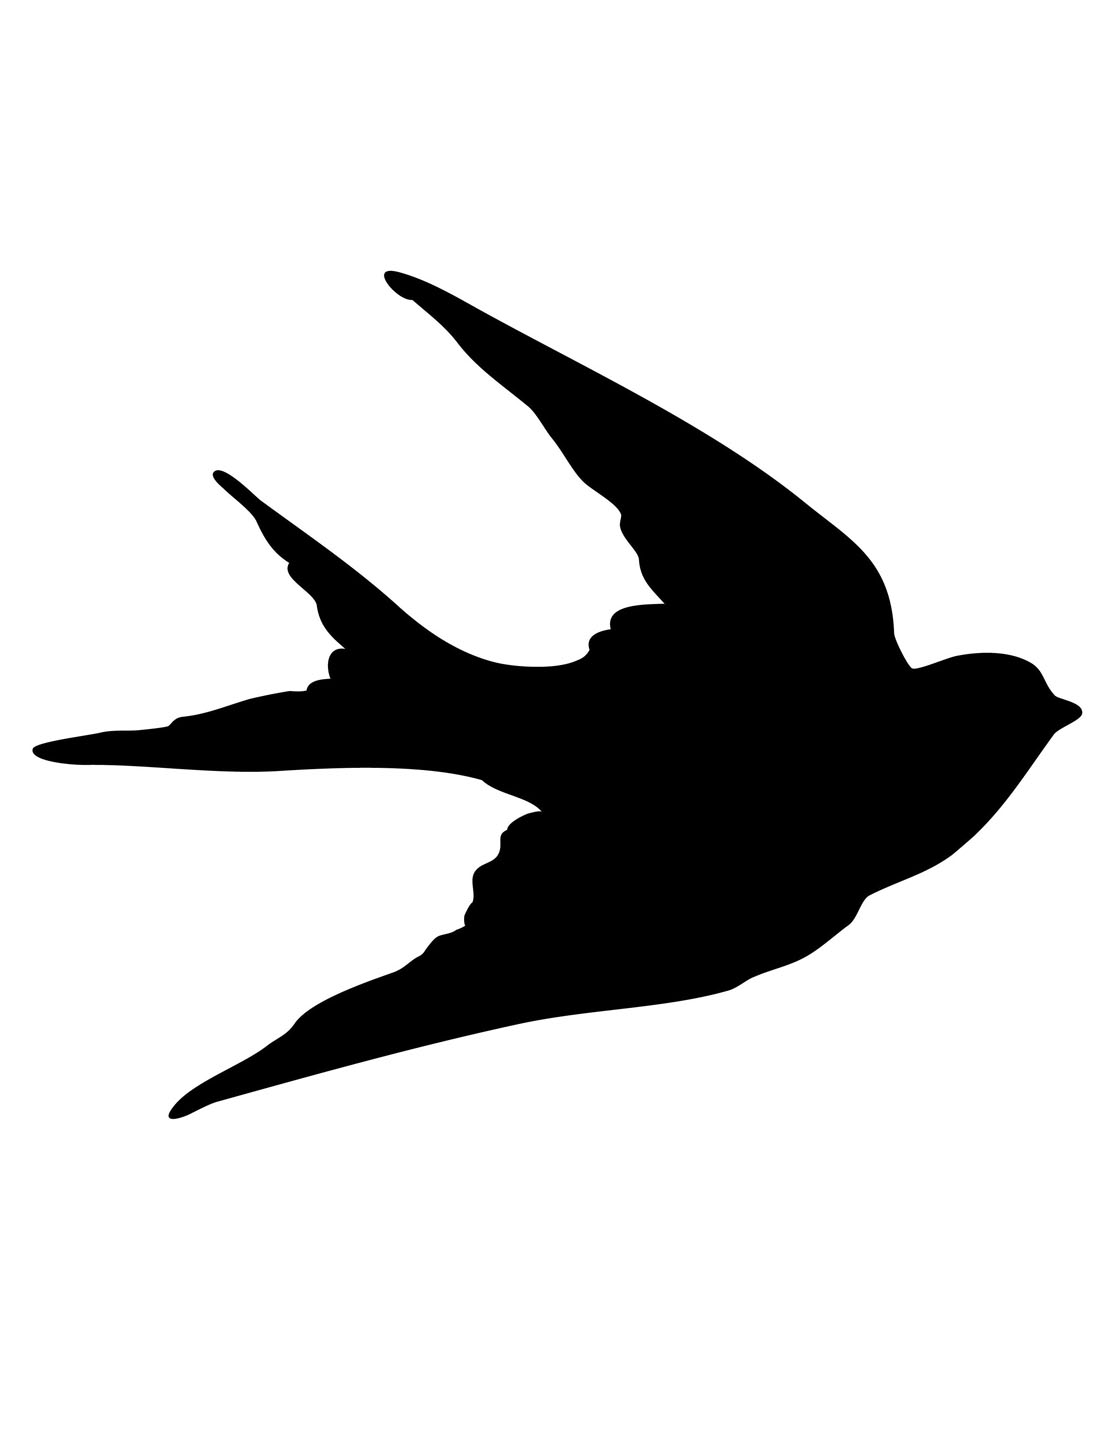 Transfer Printables Bird Silhouettes Swallows The